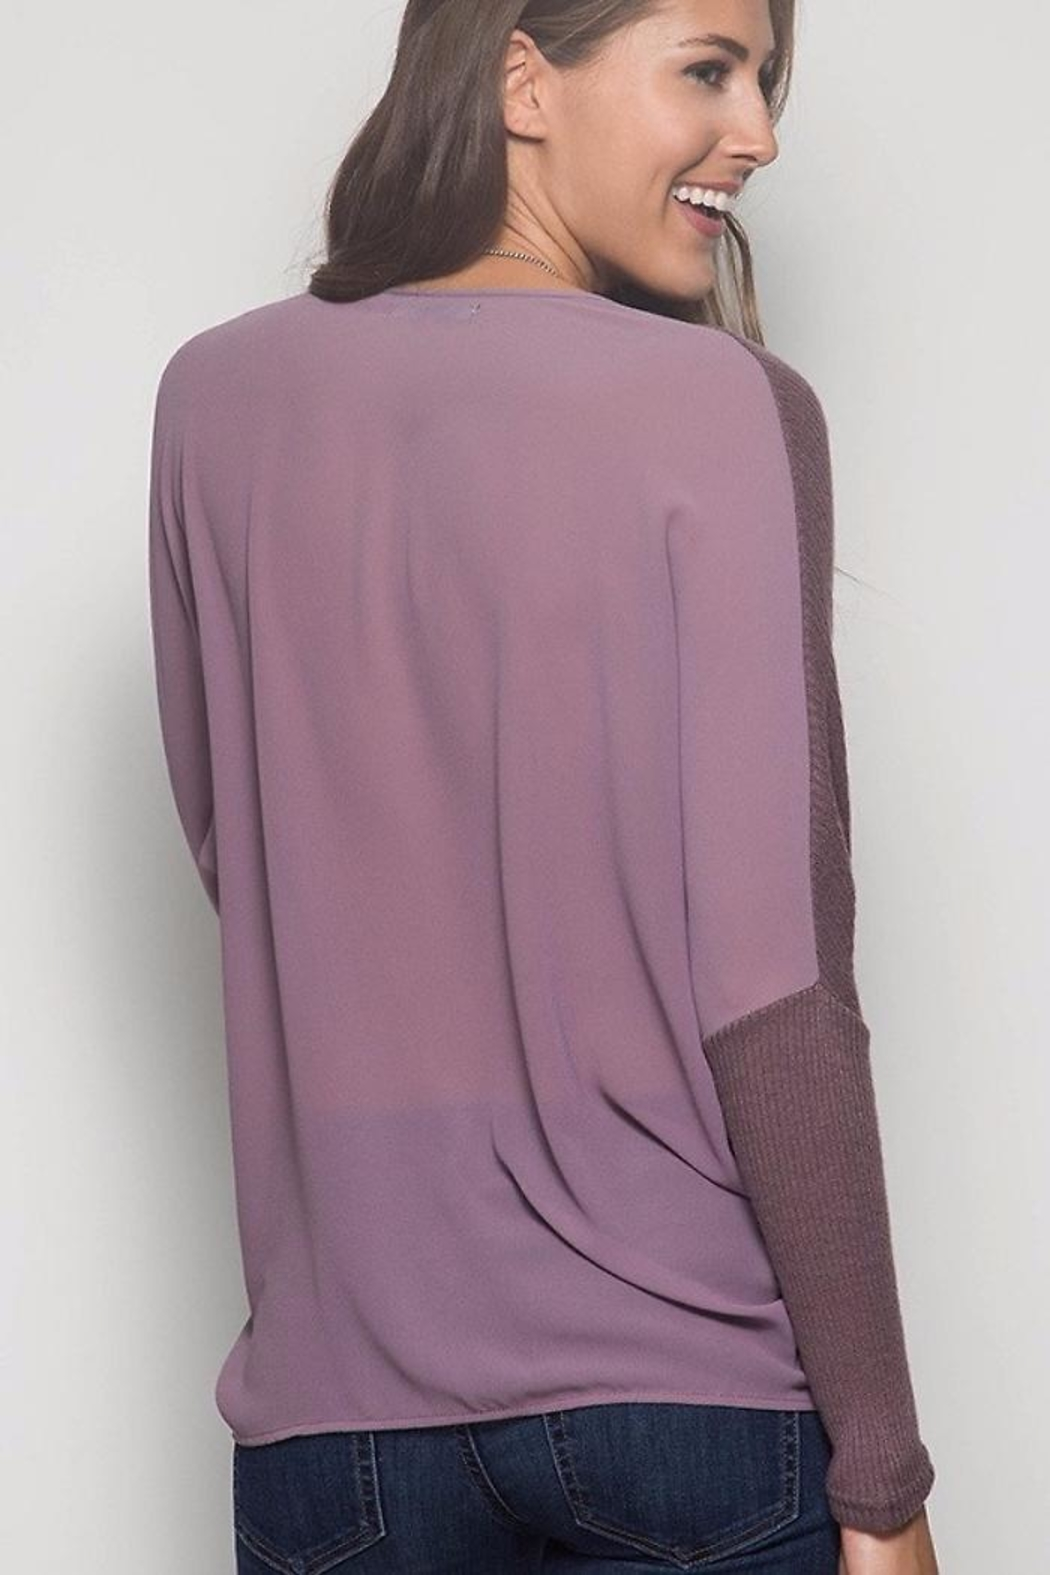 People Outfitter Lily's Knit Tunic - Front Cropped Image